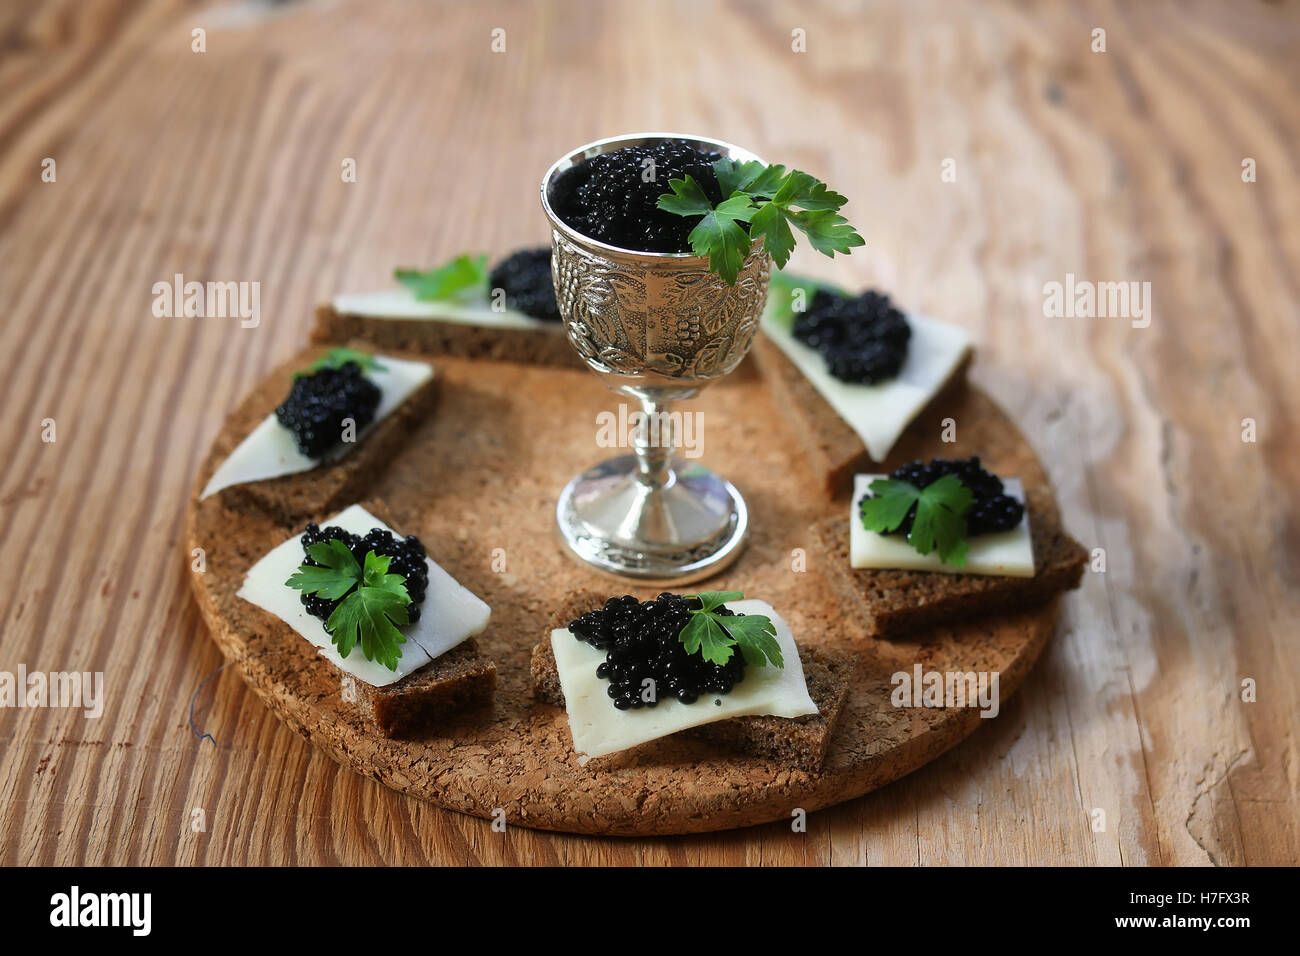 snack black caviar on a wooden background - Stock Image